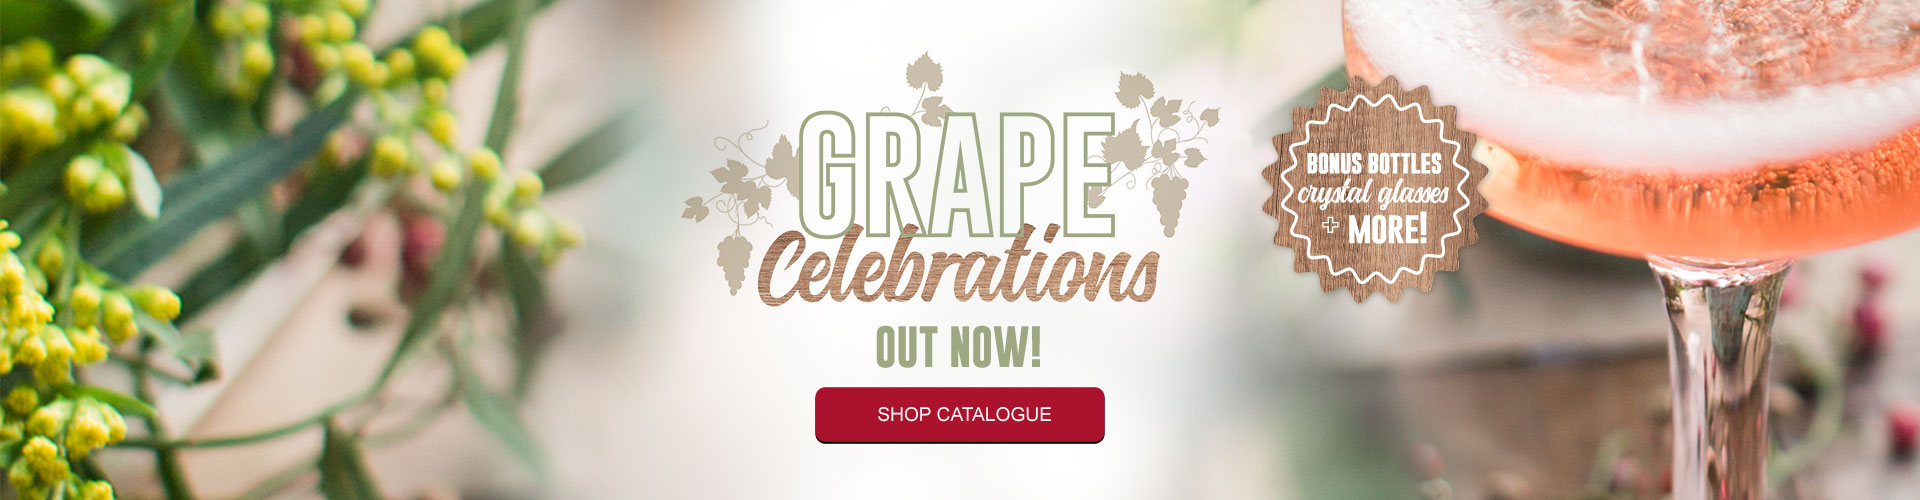 Spring Catalogue out now! Start Shopping >>